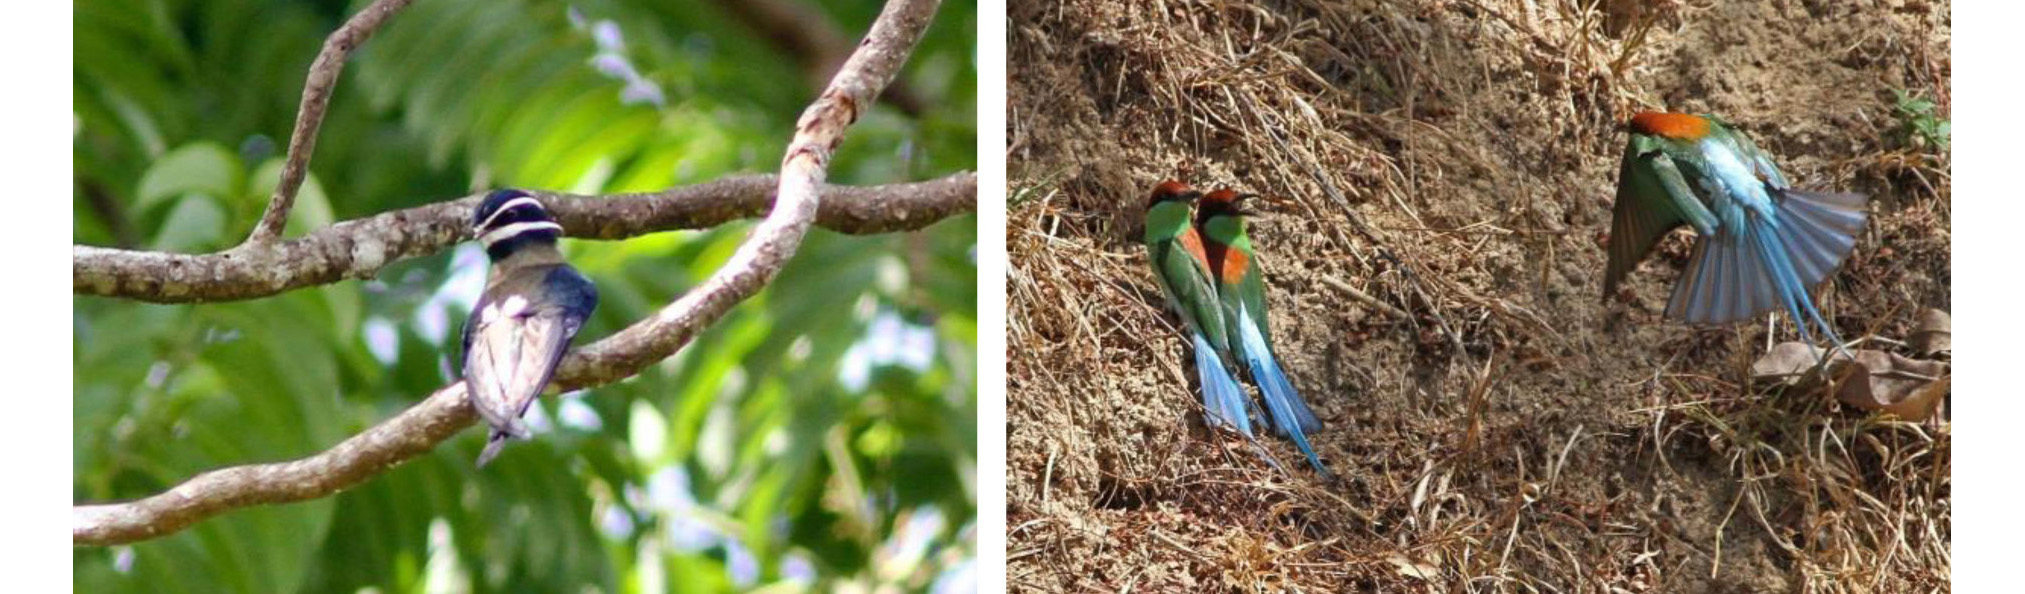 Whiskered Treeswift and Blue-tailed Bee-eater